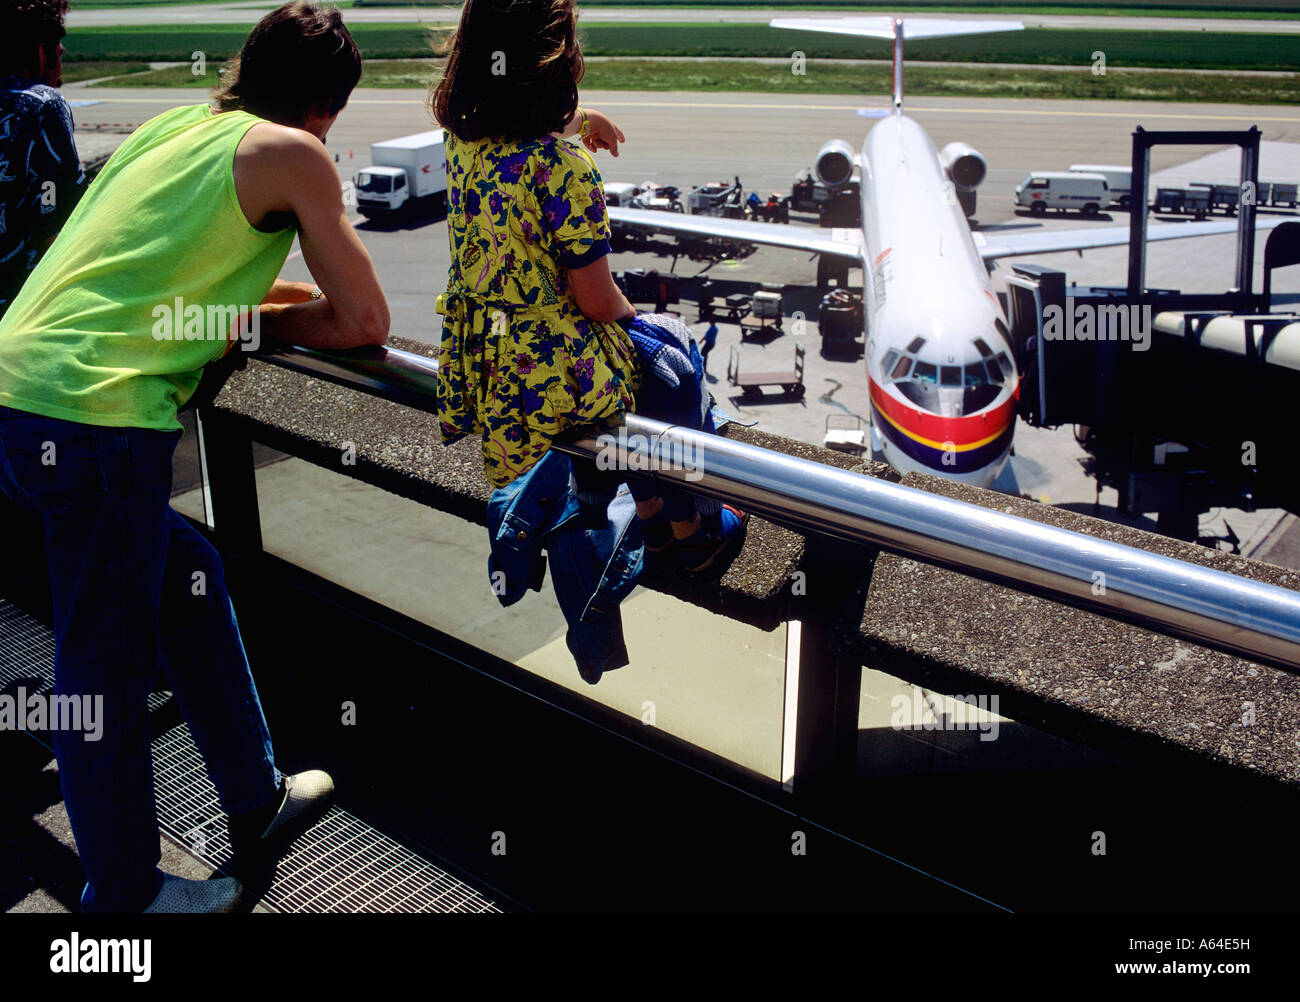 spotting charter airplane on spectators gallery at zurich airport switzerland - Stock Image